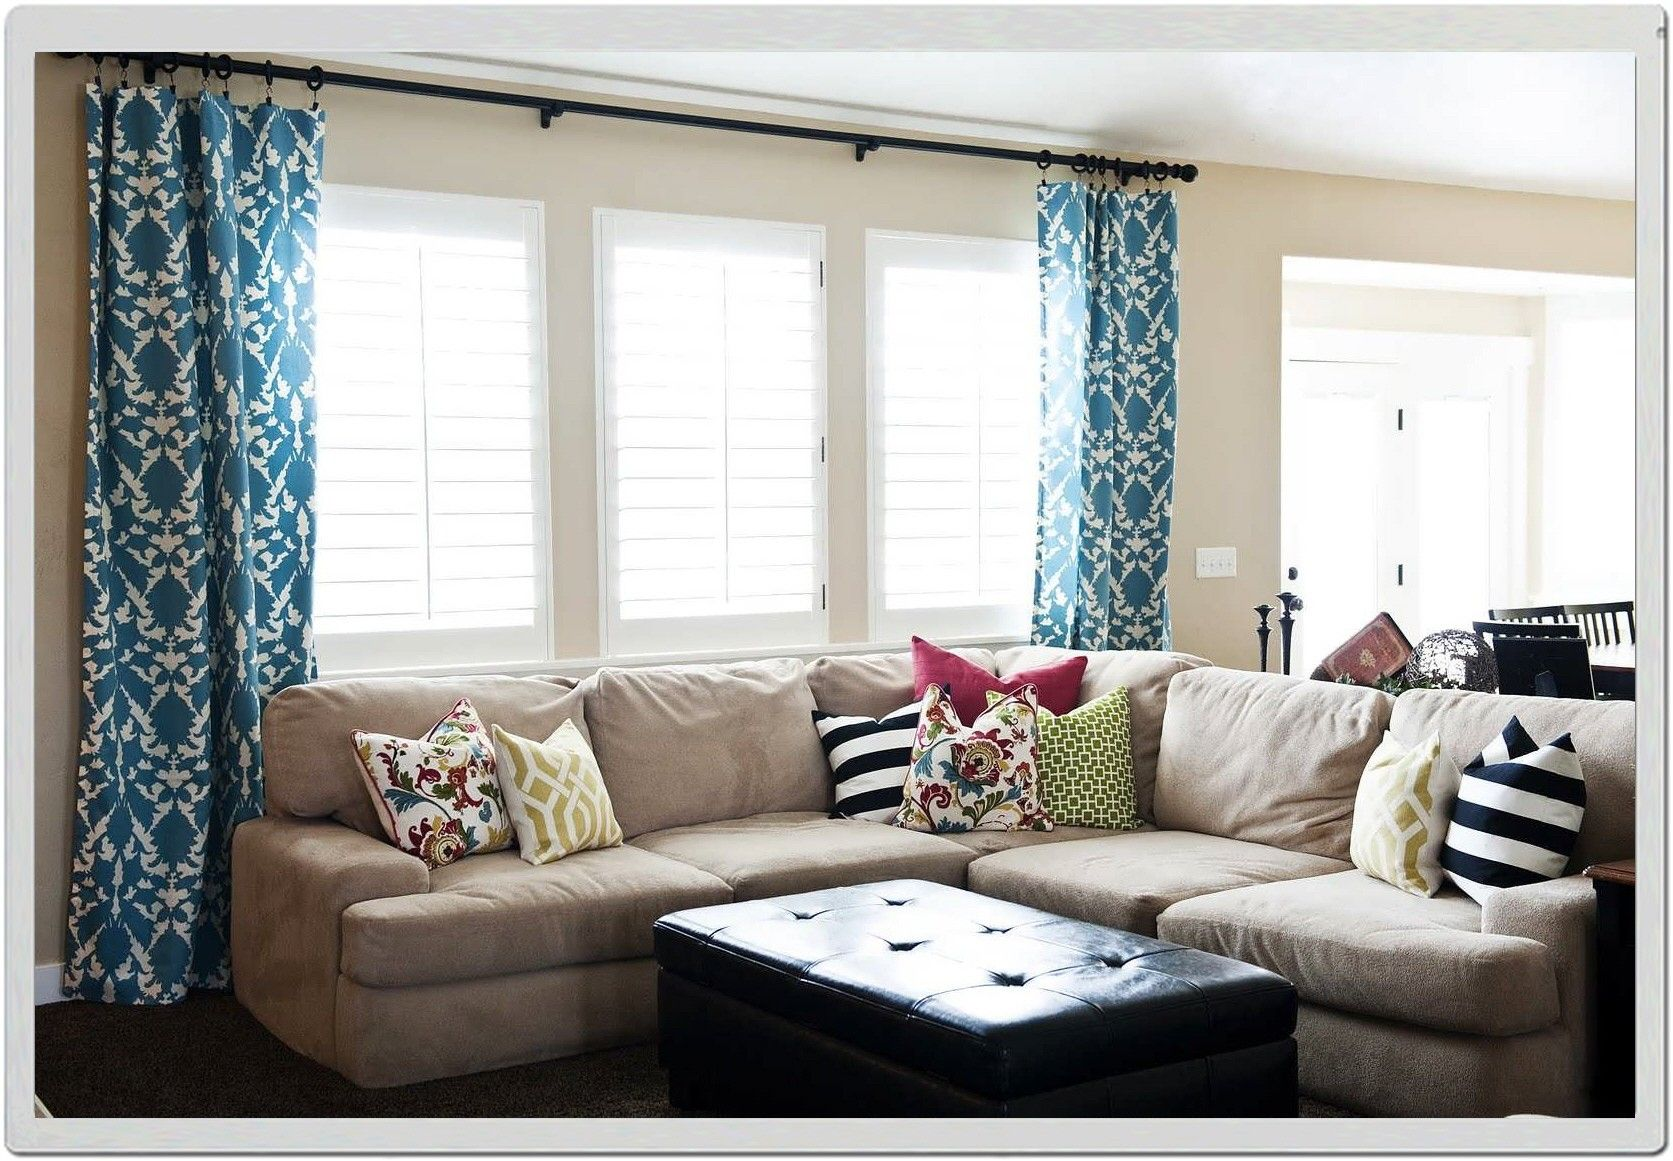 Image Result For Curtains Across Multiple Windows Living Room